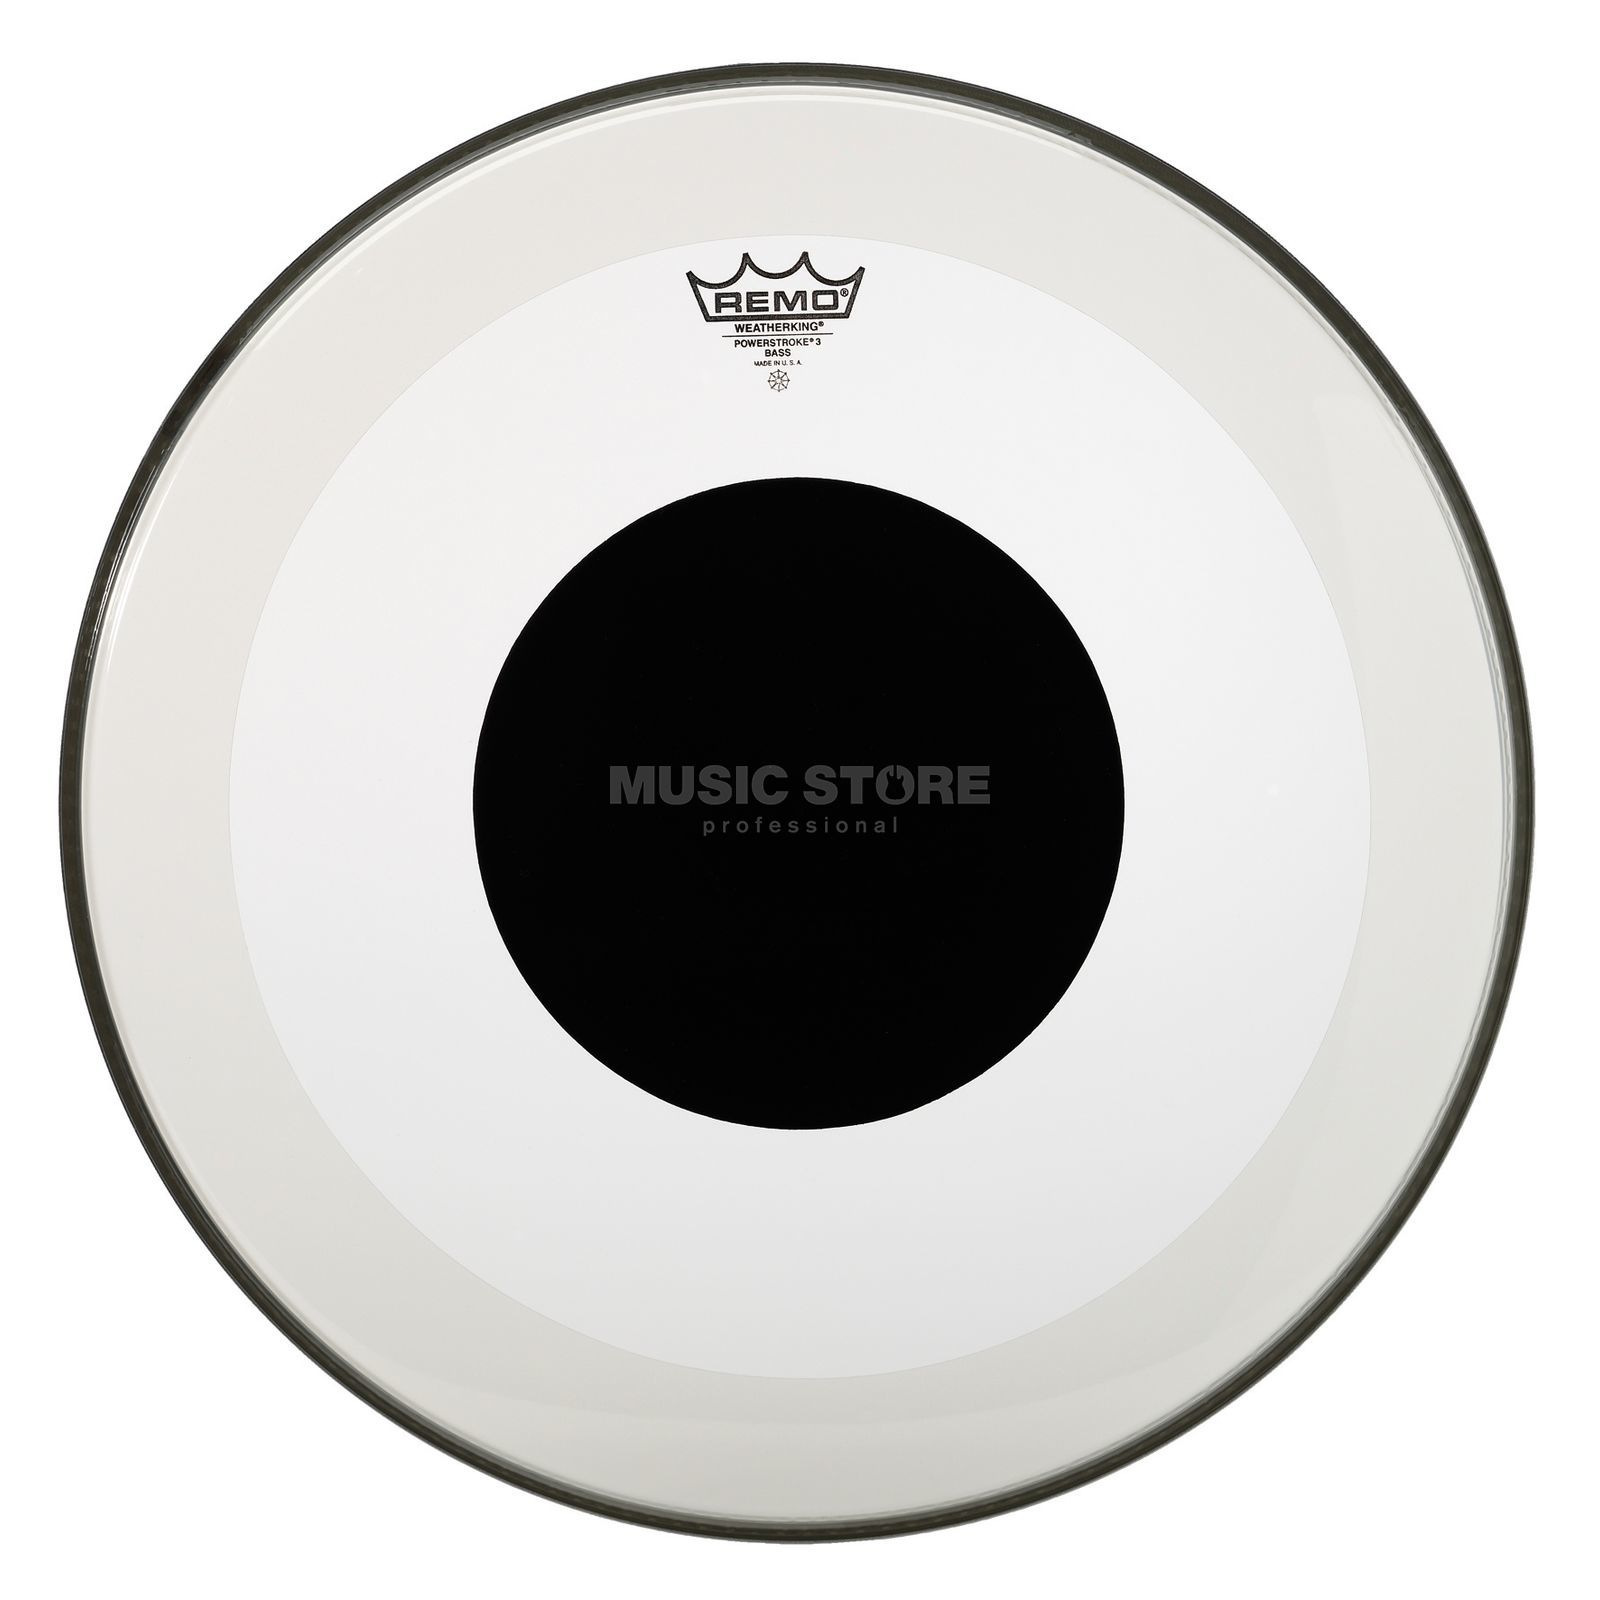 "Remo Powerstroke 3 Black Dot 26"", Clear, BassDrum Batter Produktbild"